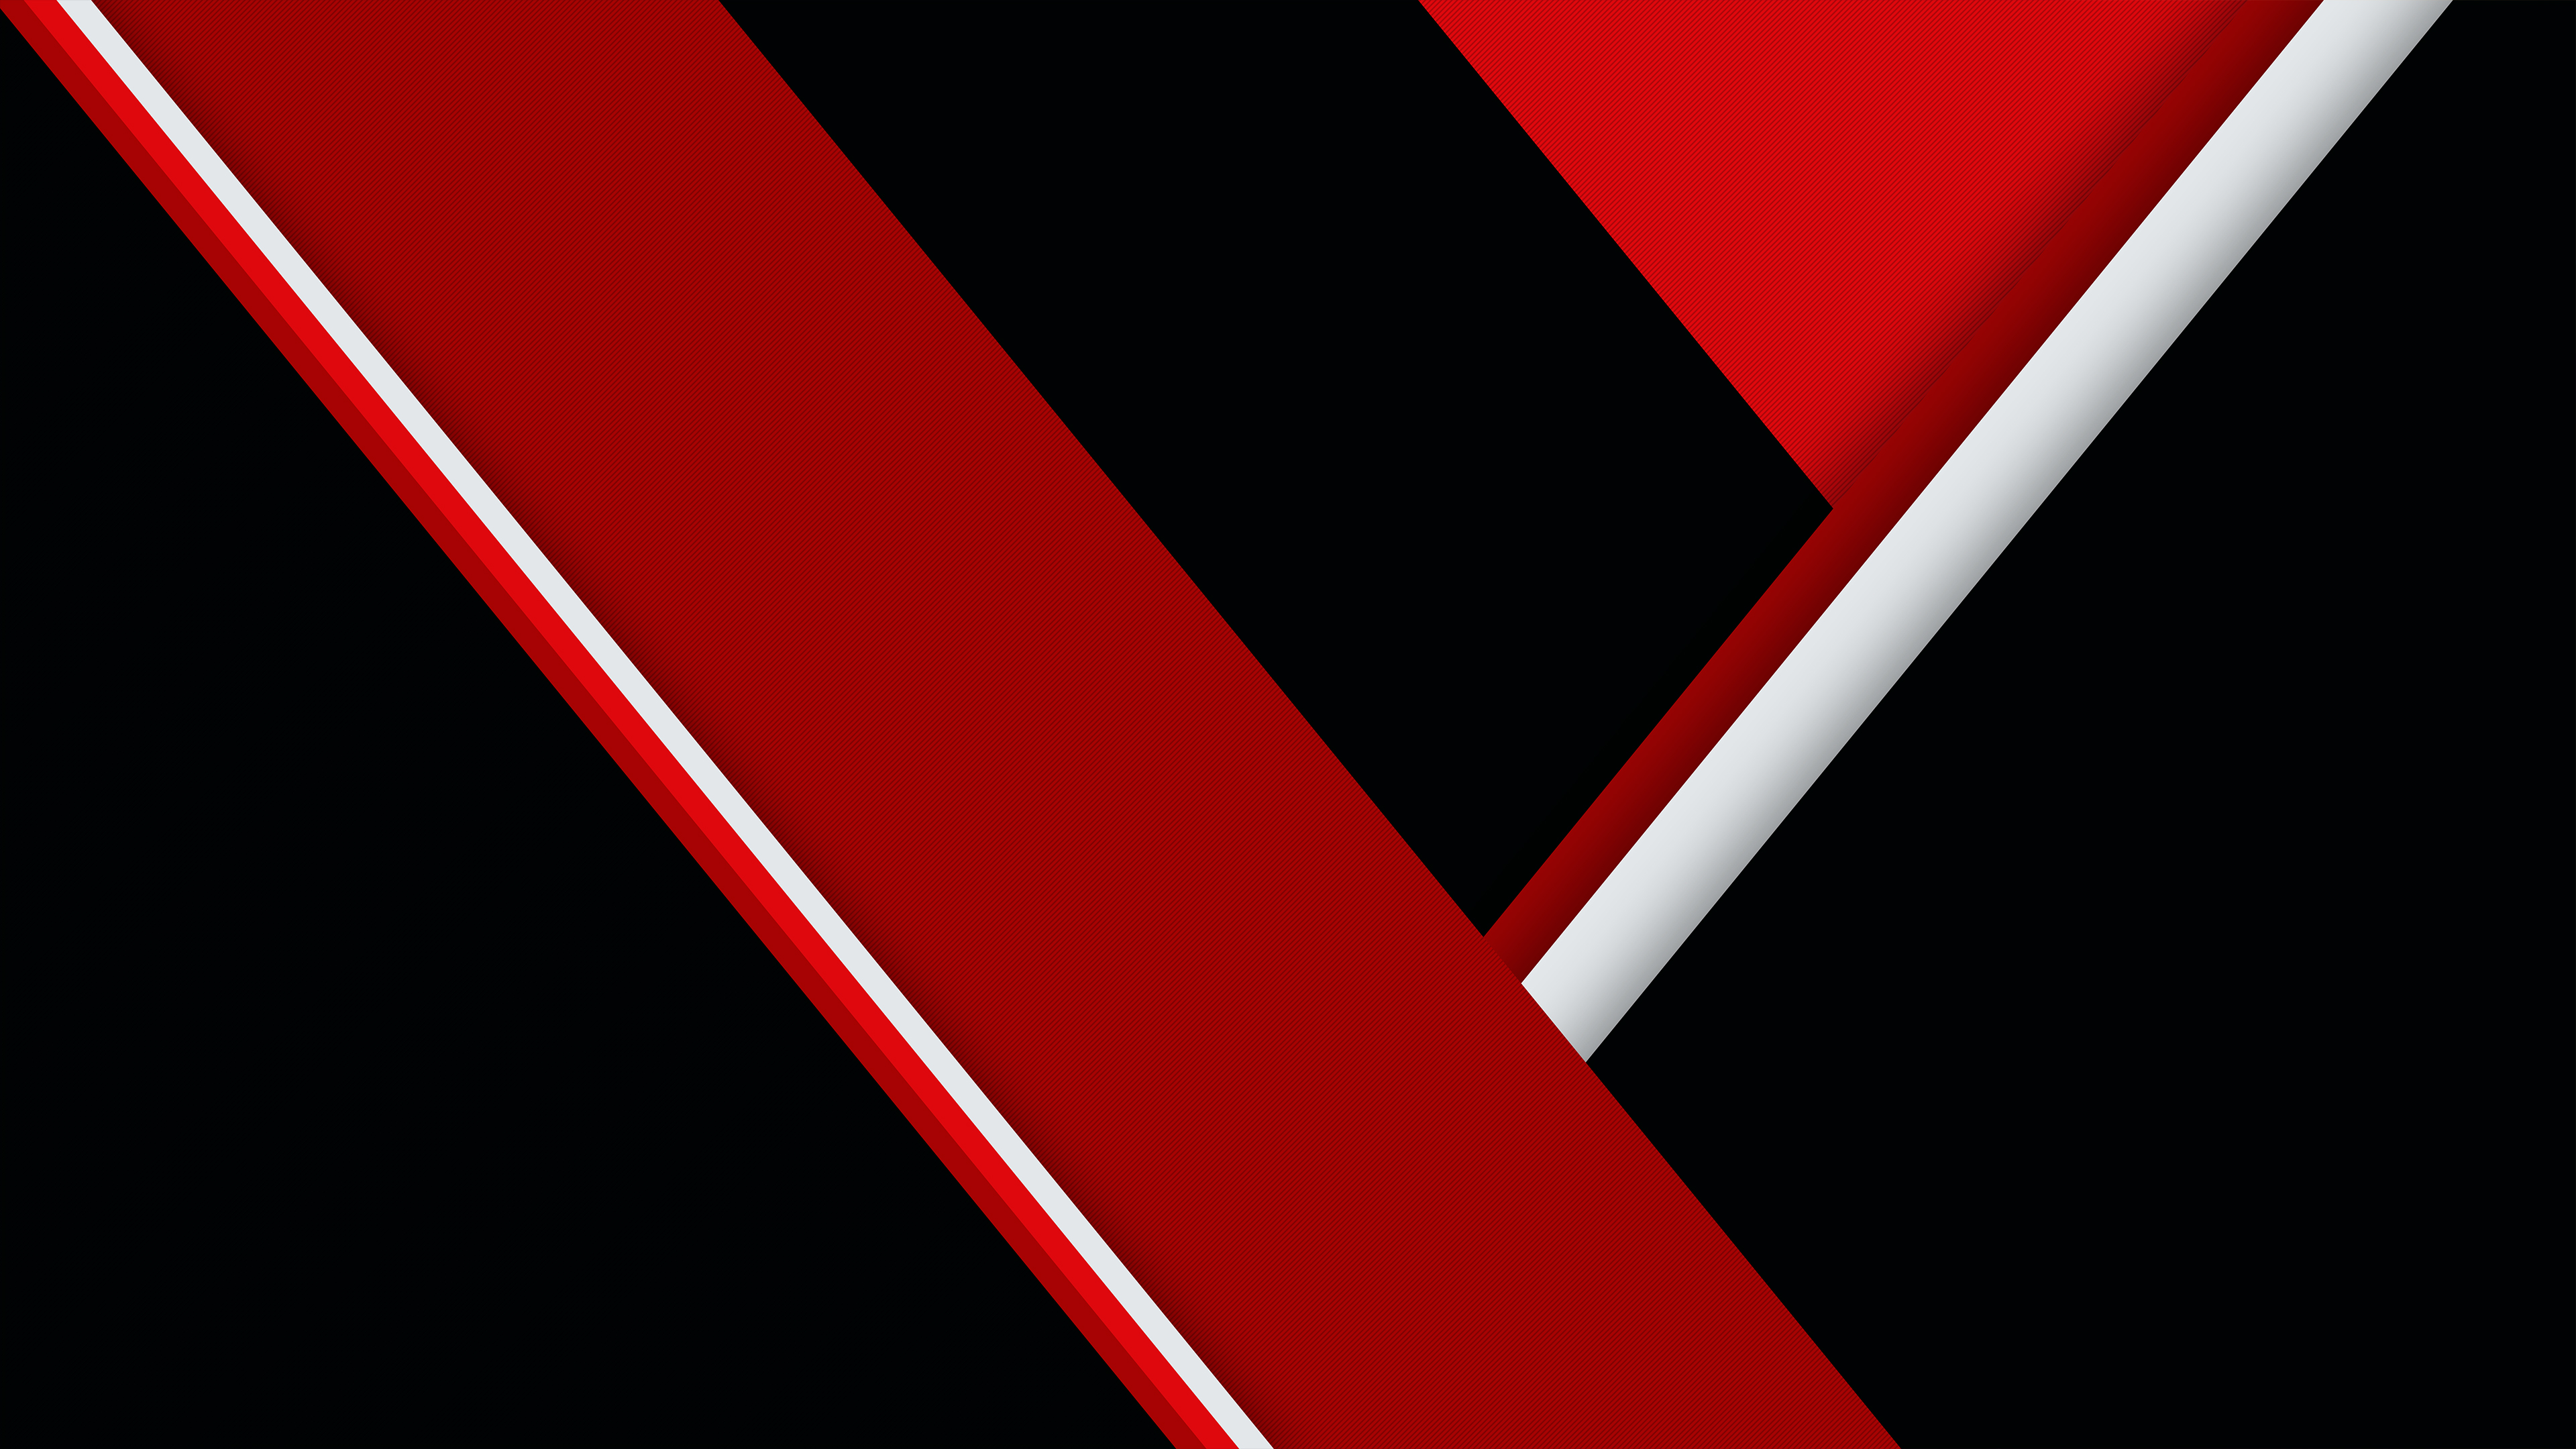 Red Black Texture Shapes Abstract 4k Hd Abstract 4k Wallpapers Images Backgrounds Photos And Pictures